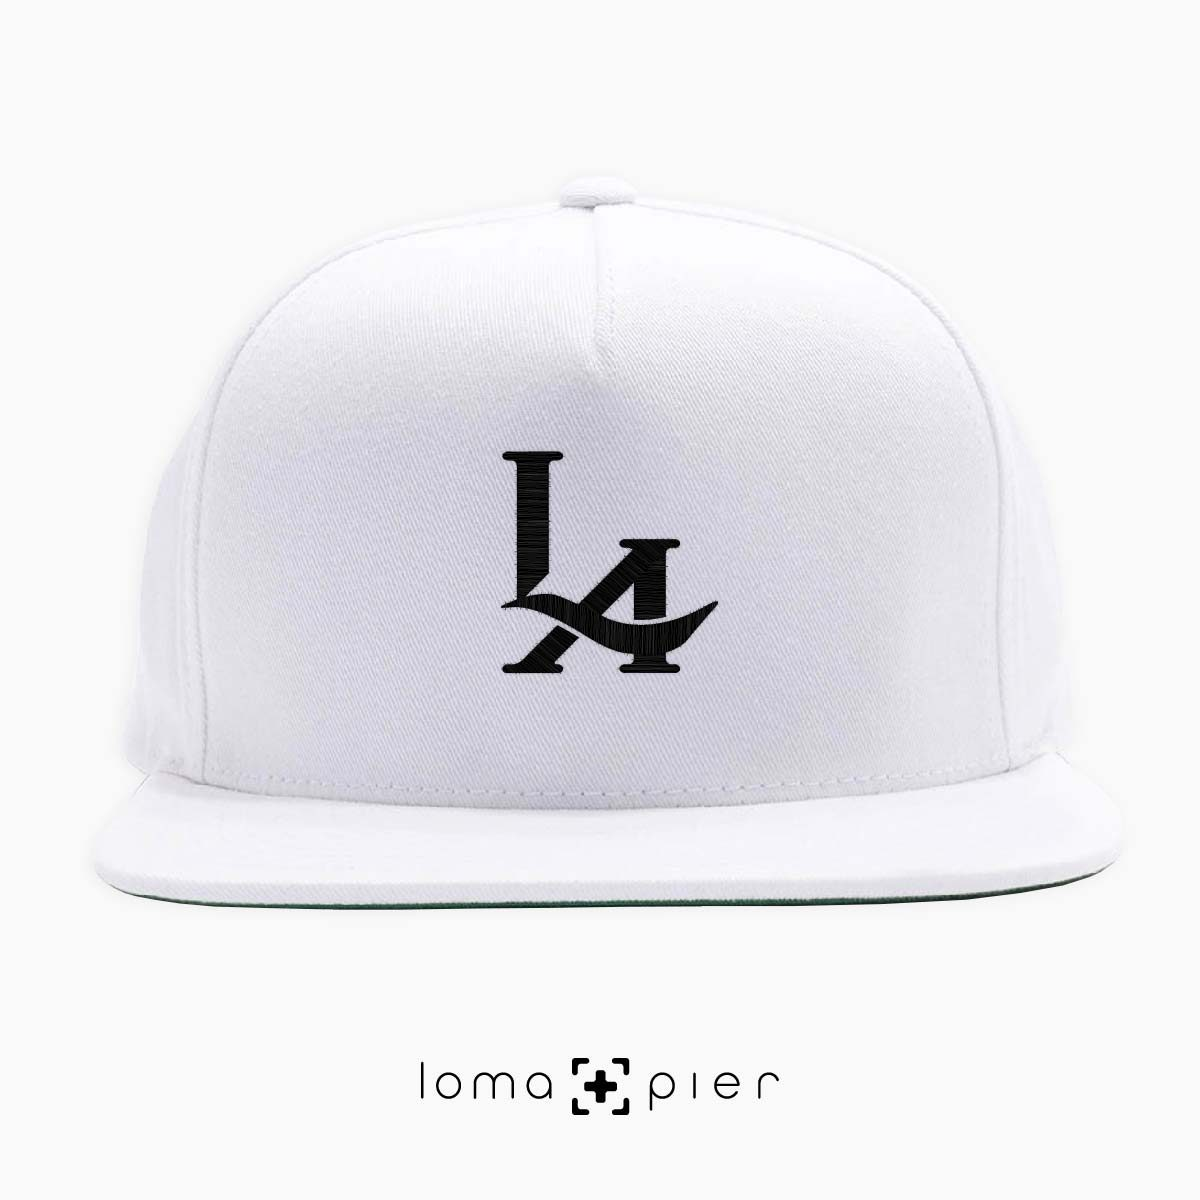 los angeles LA logo embroidered on a white classic snapback hat by loma+pier hat store